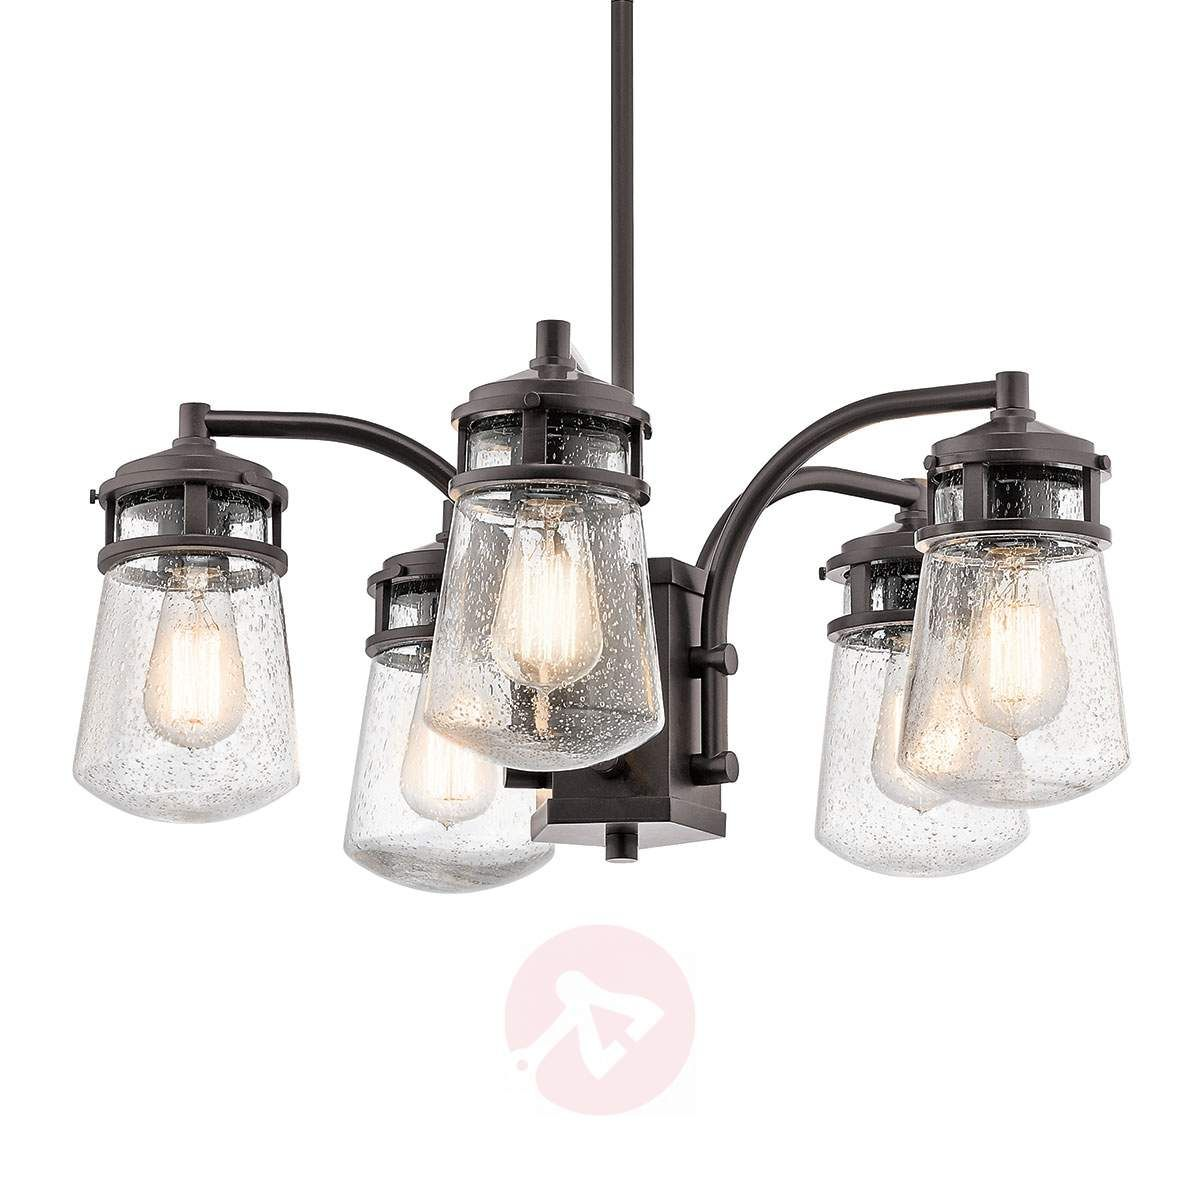 5 Punktowa Zewnetrzna Lampa Wiszaca Lyndon Outdoor Hanging Lights Outdoor Pendant Lighting Outdoor Ceiling Lights